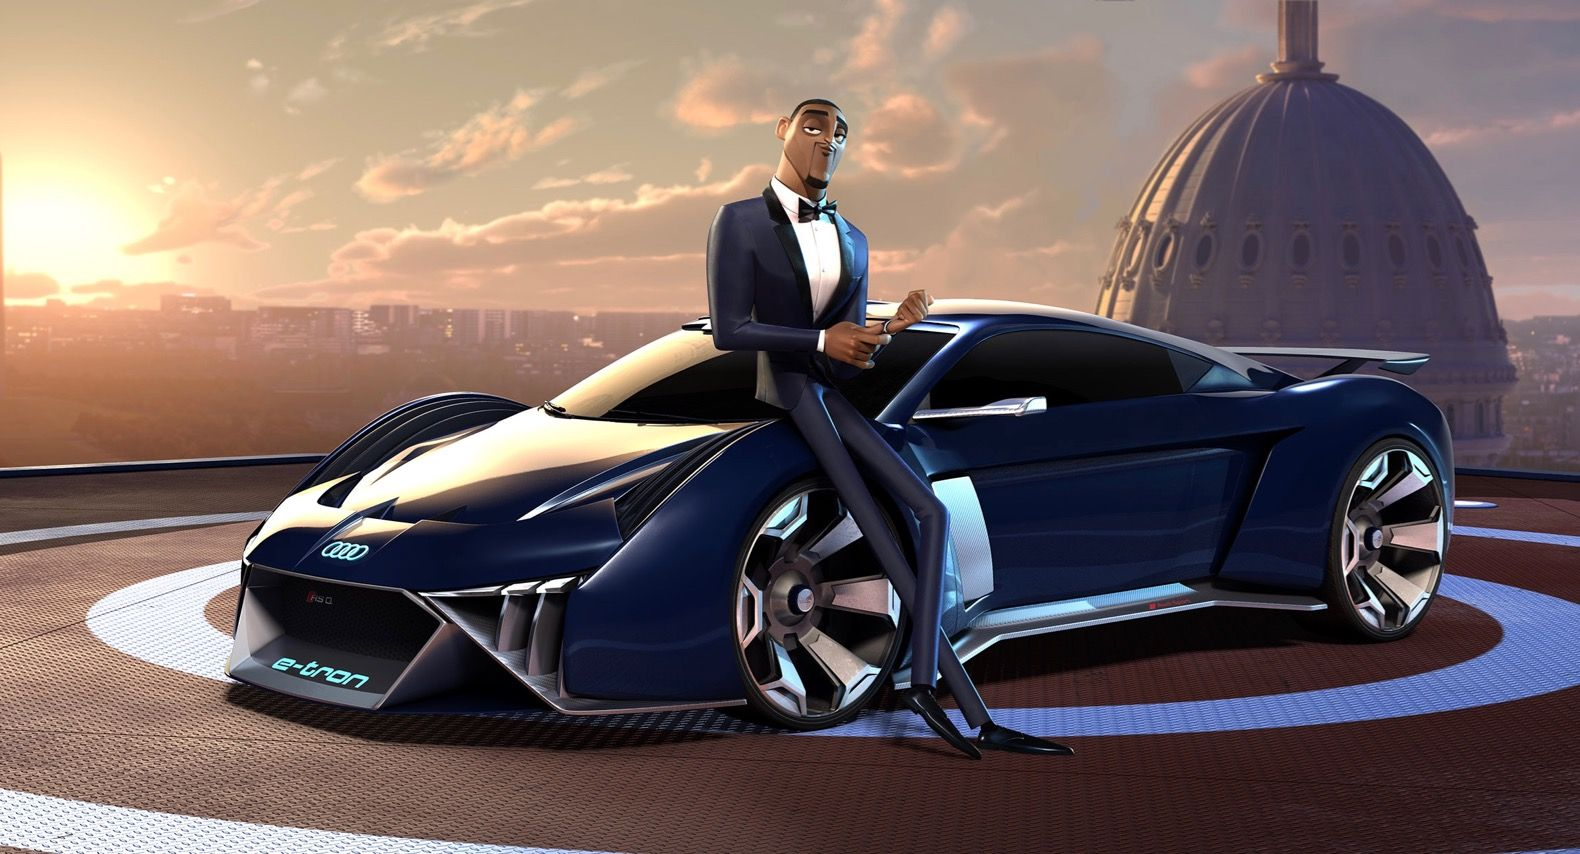 Audi Rsq E Tron Concept Stars In Spies In Disguise Blue Sky